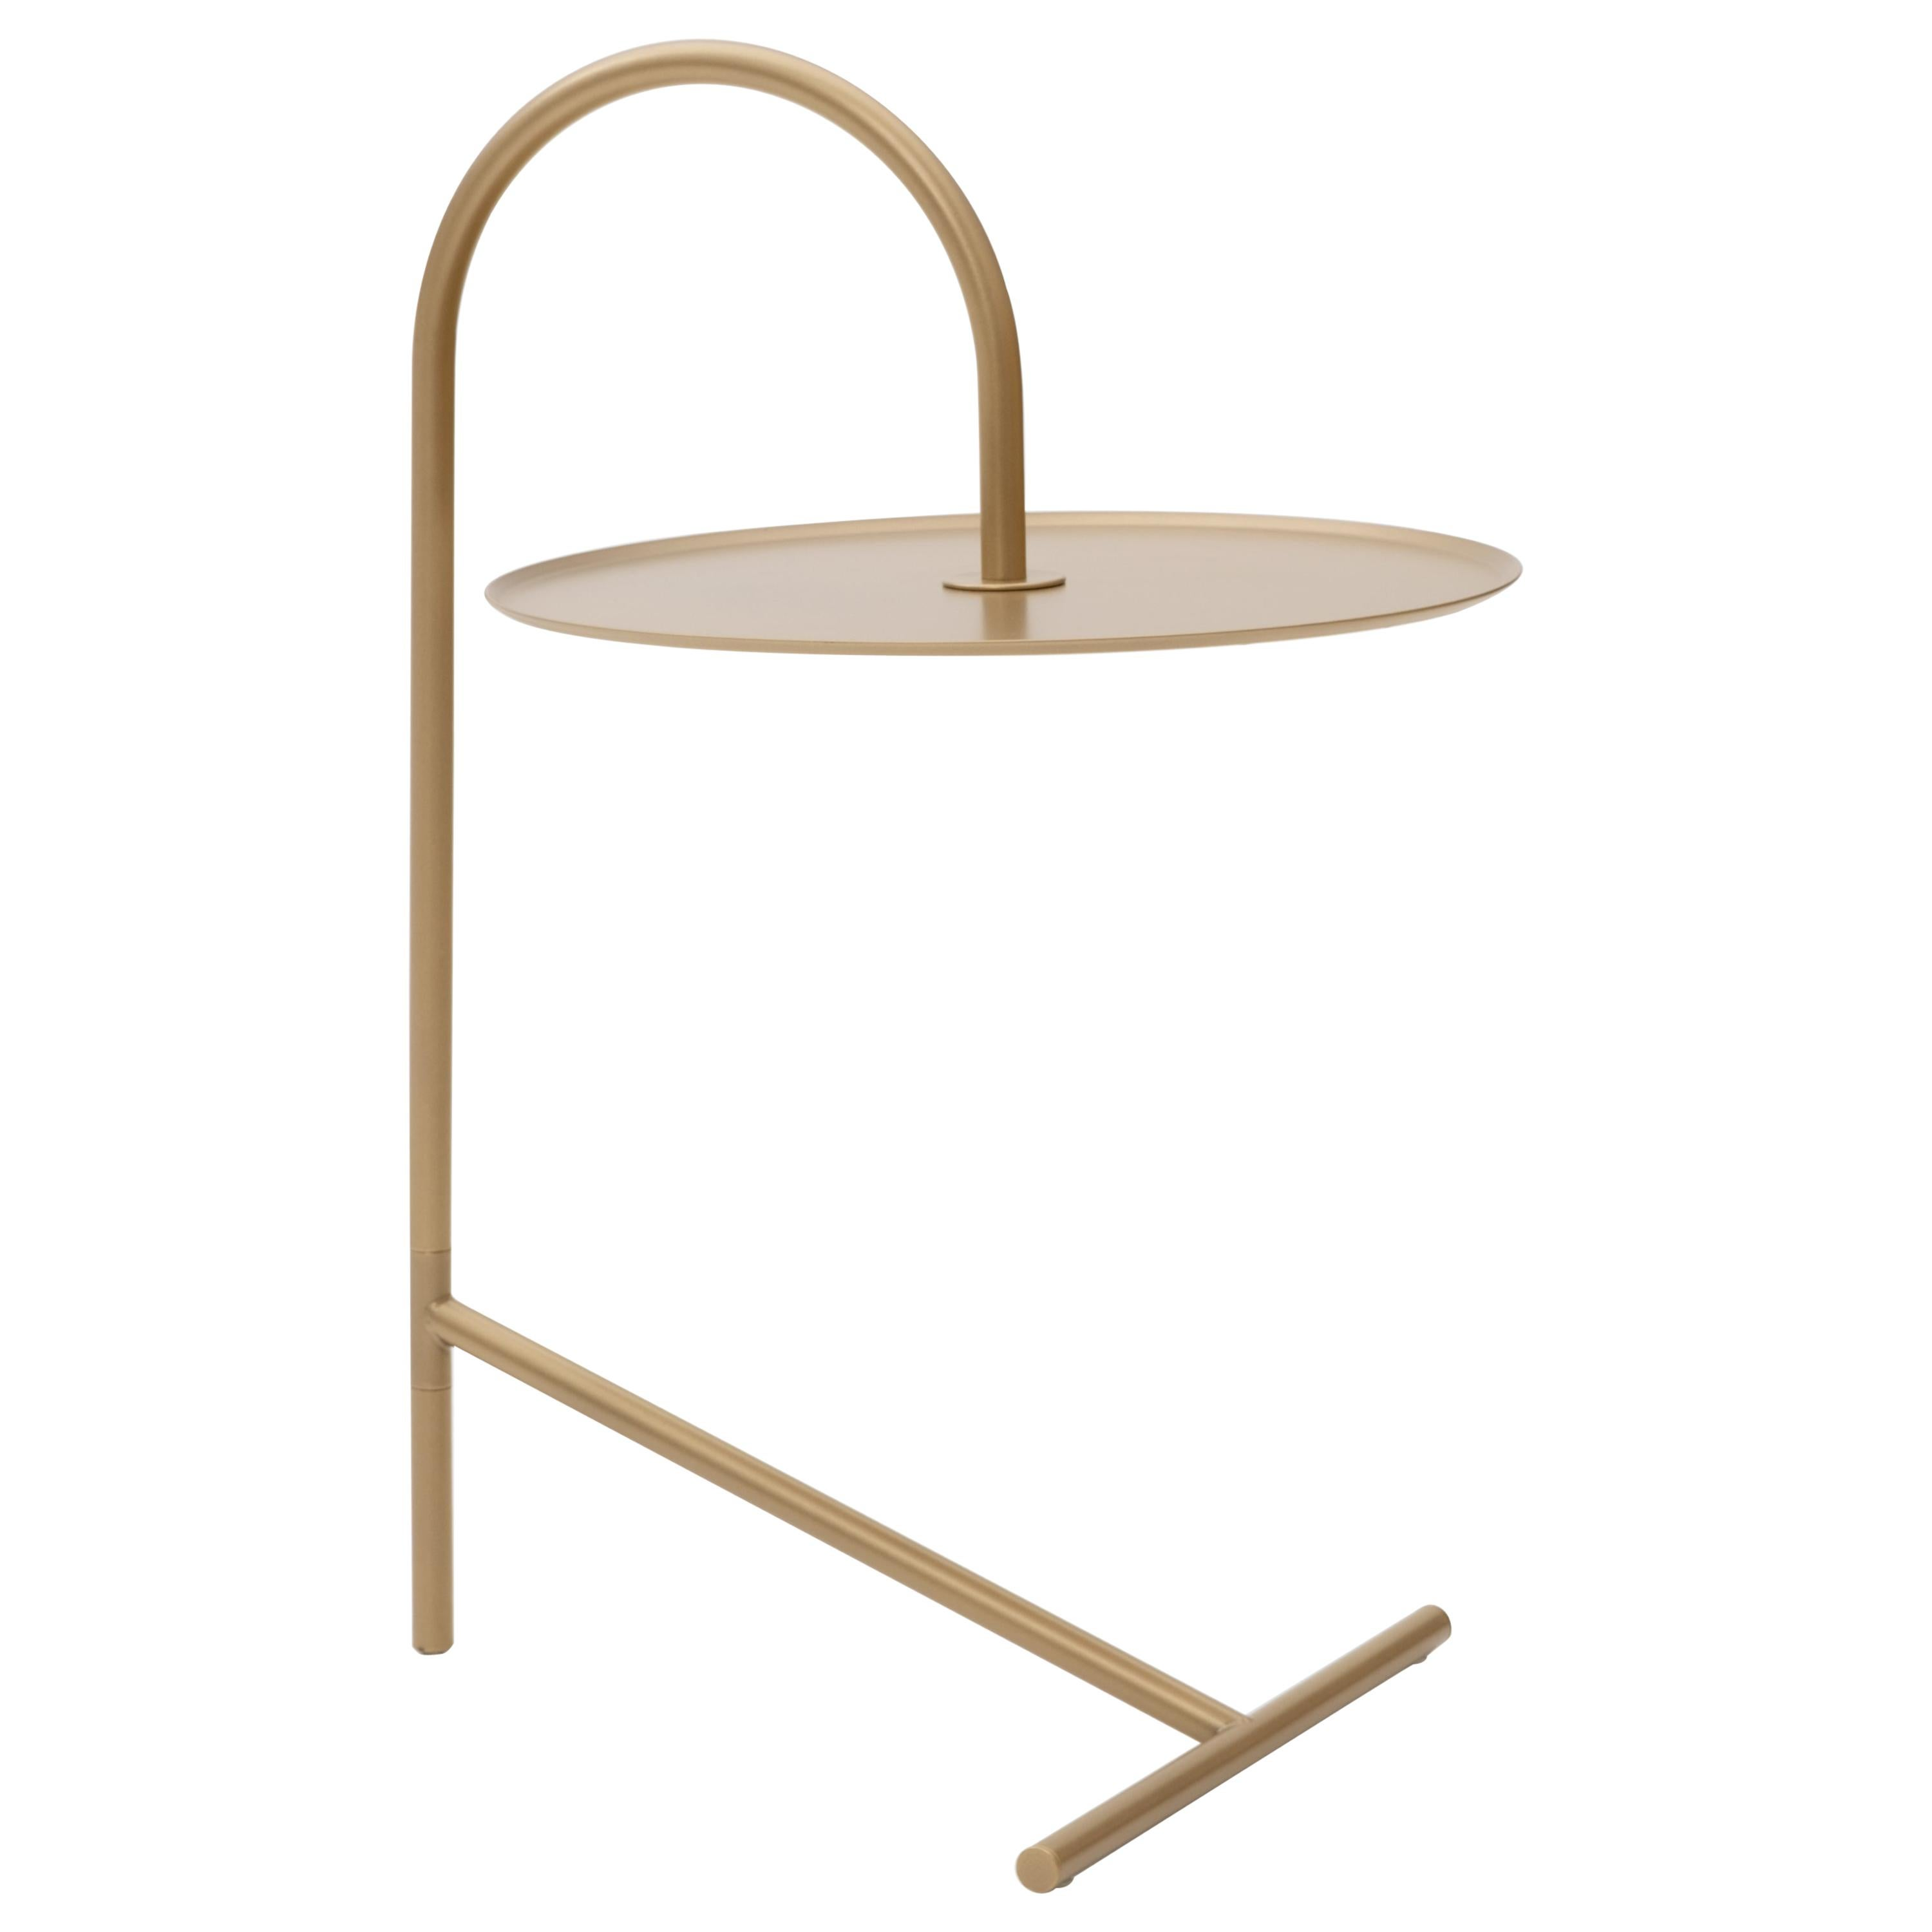 MELT, minimalistic gold steel side coffee TABLE by oitoproducts